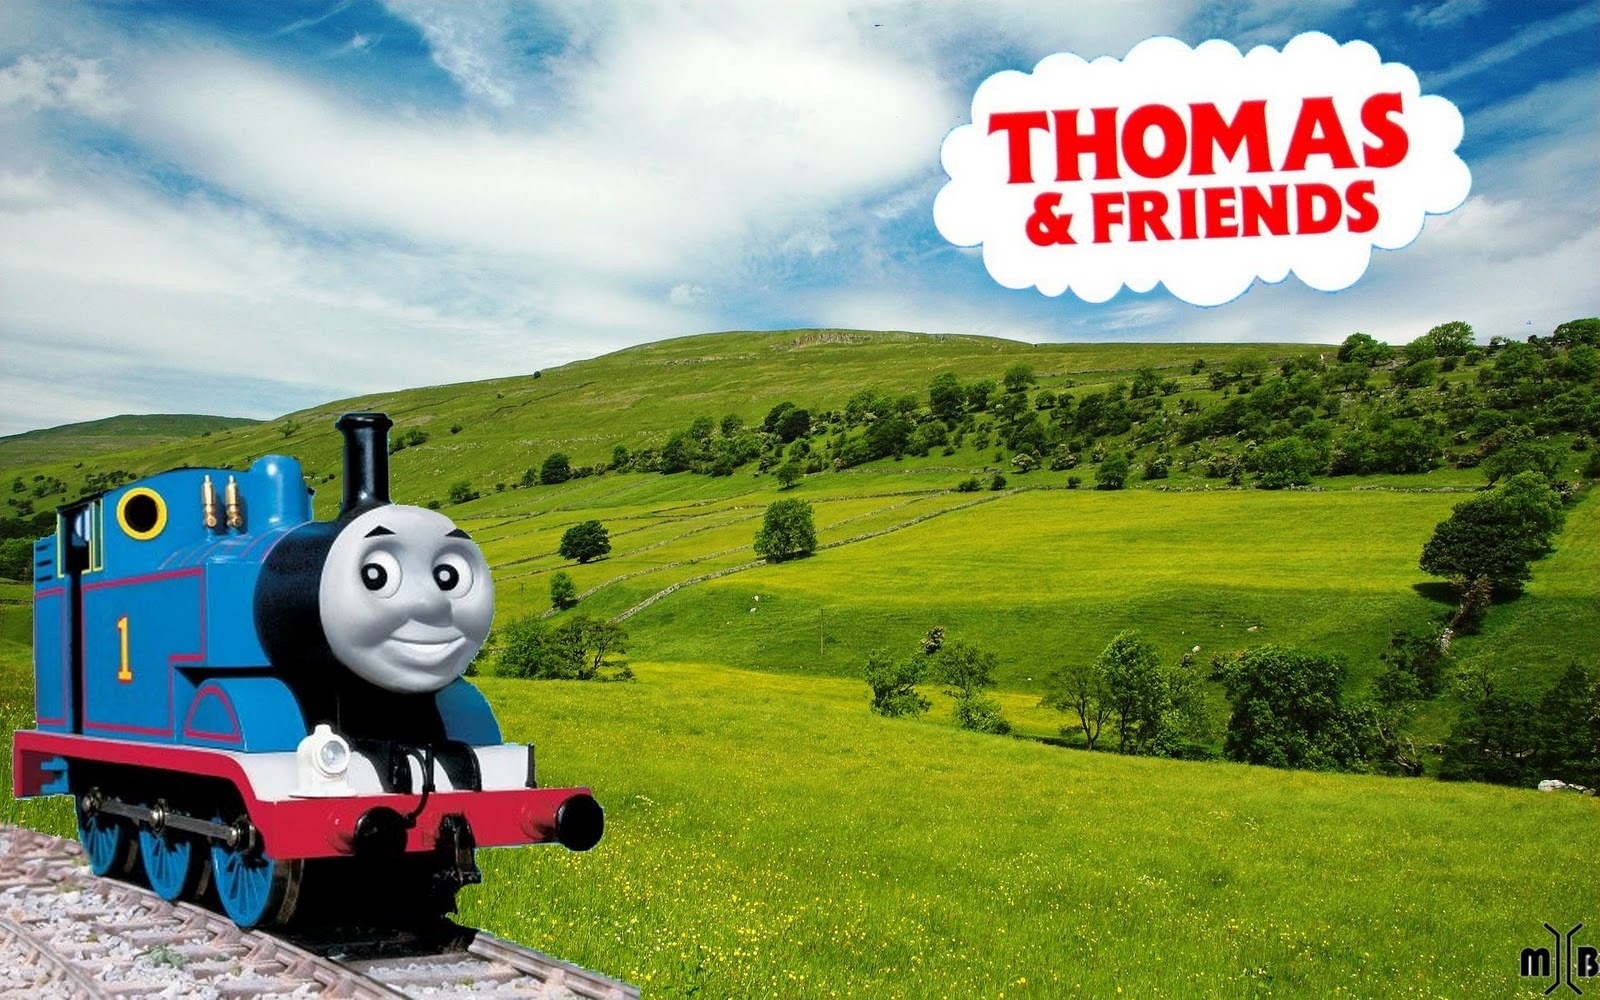 Free Cartoon Images: Thomas and Friends